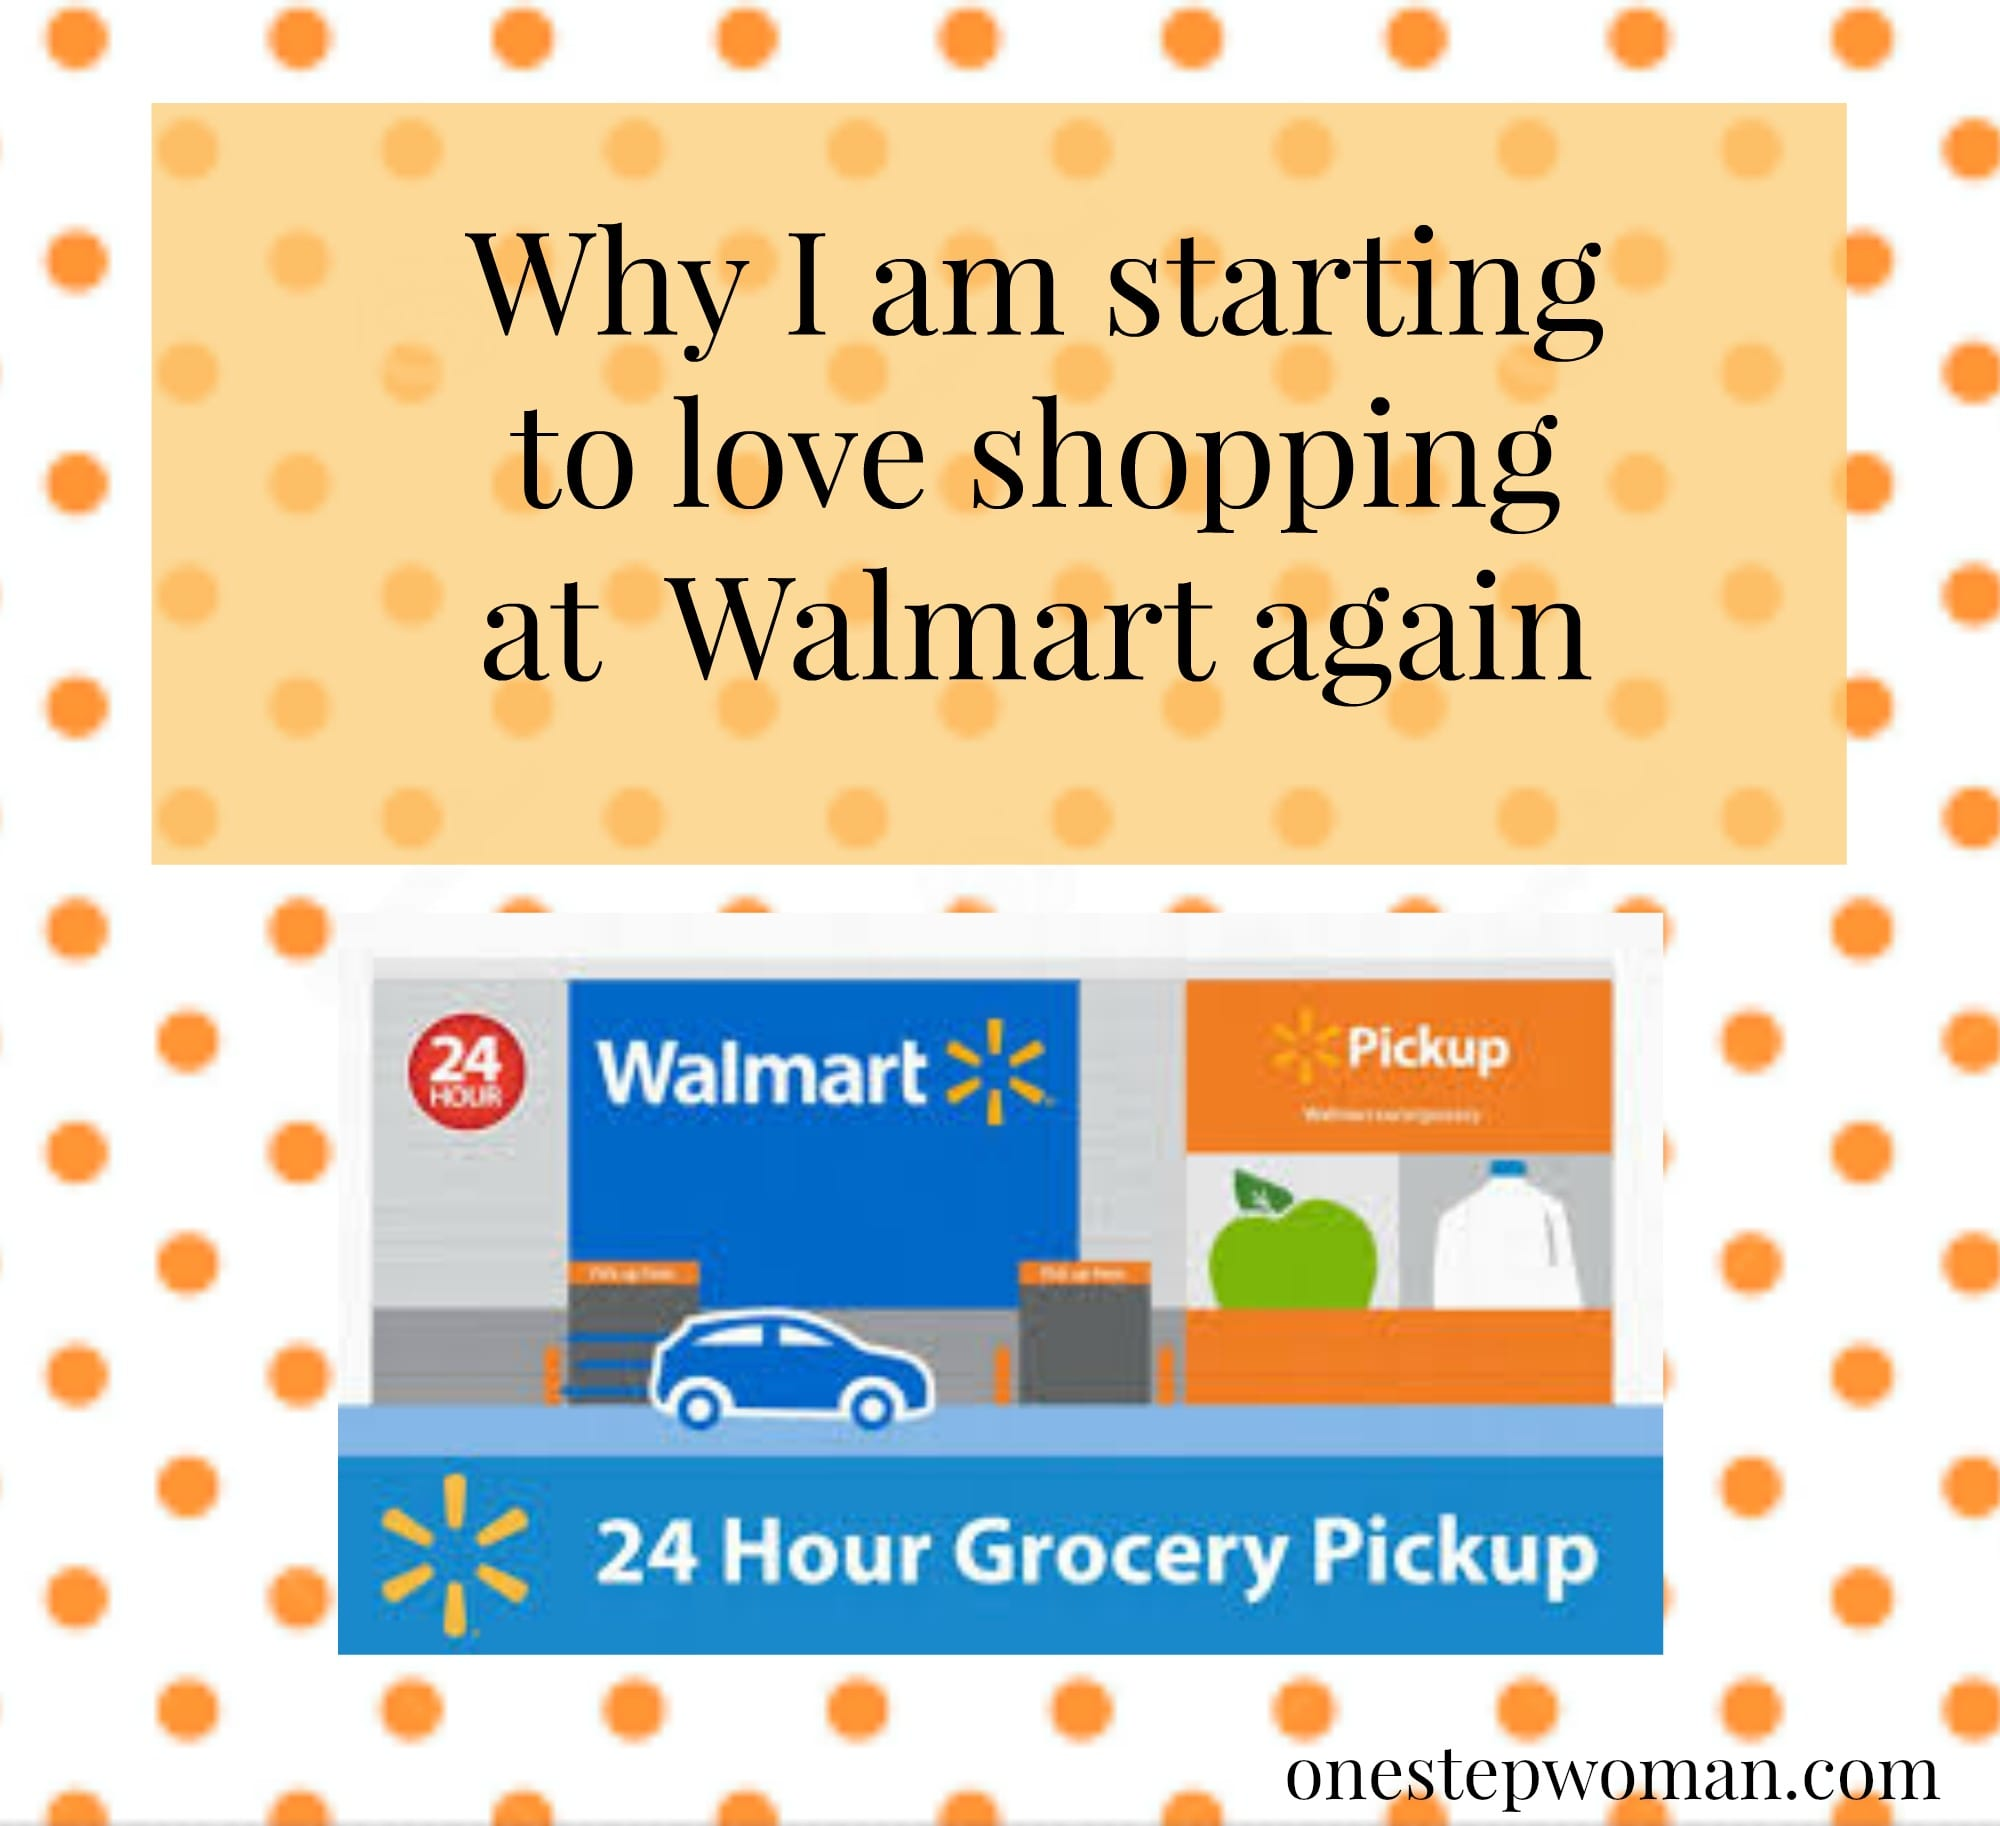 Why I am starting to love shopping at Walmart again